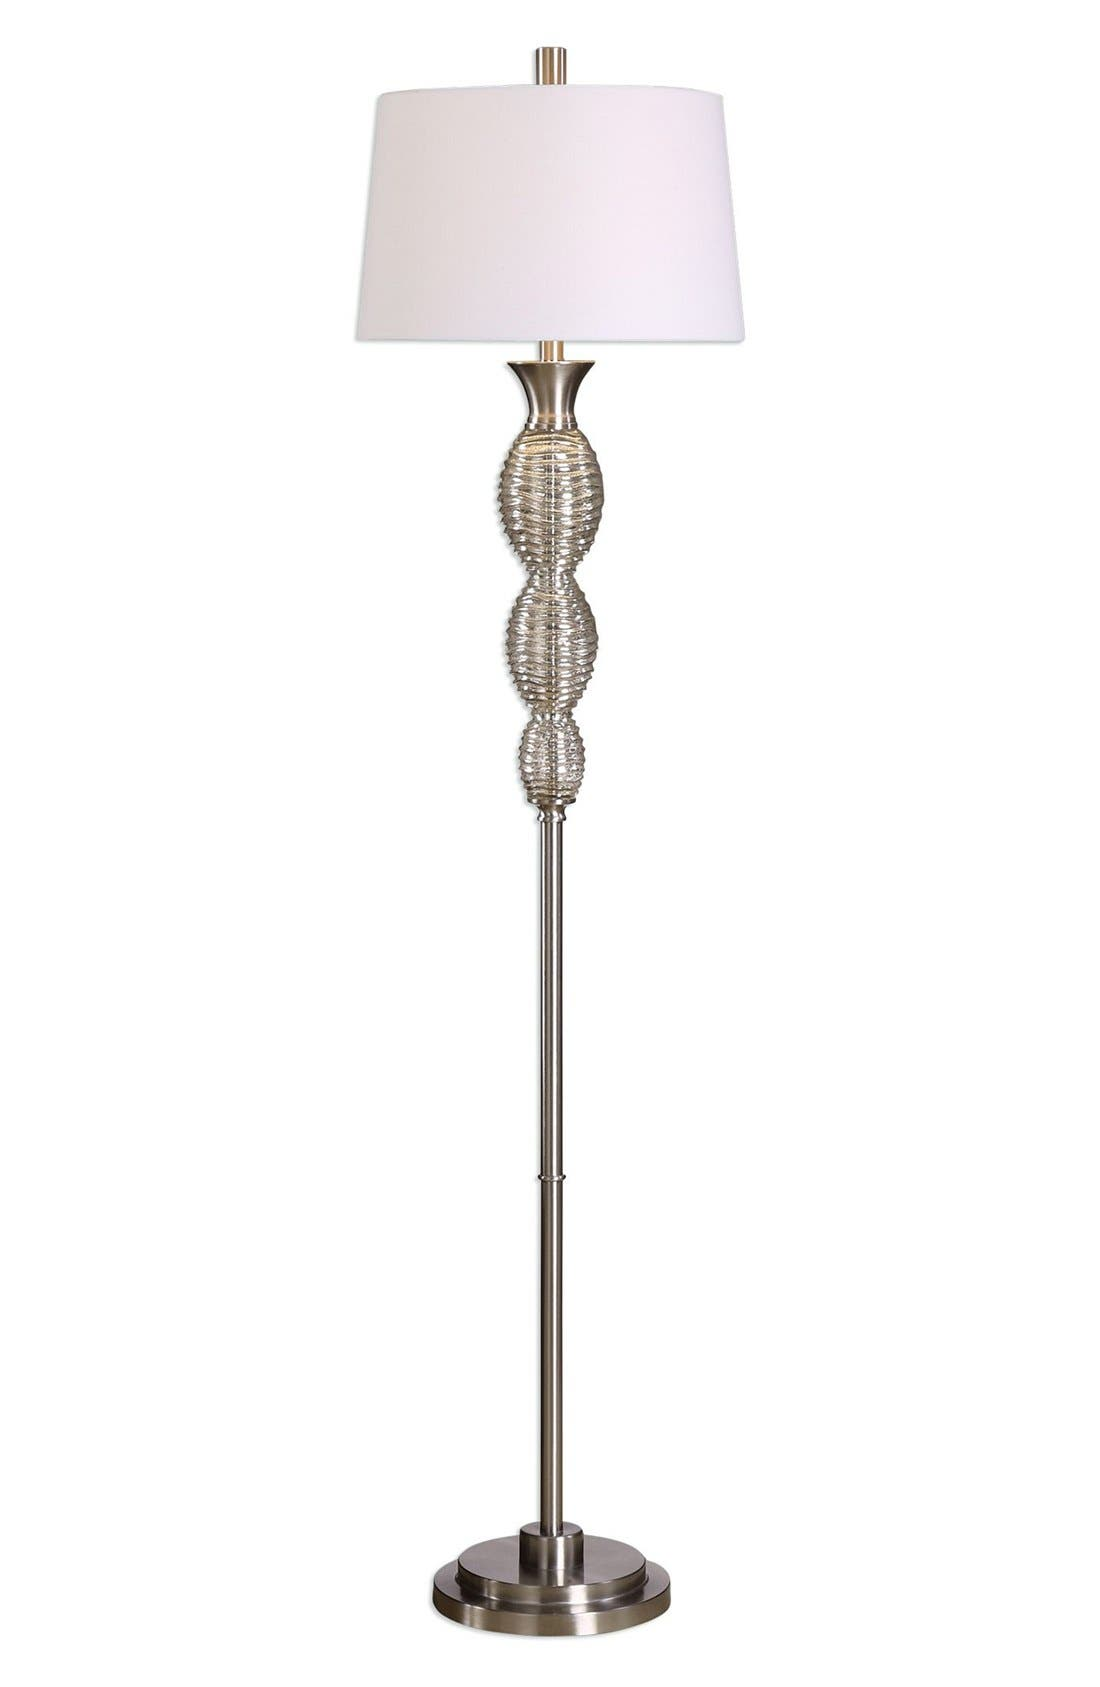 Mercury Glass Floor Lamp,                             Main thumbnail 1, color,                             Metallic Silver